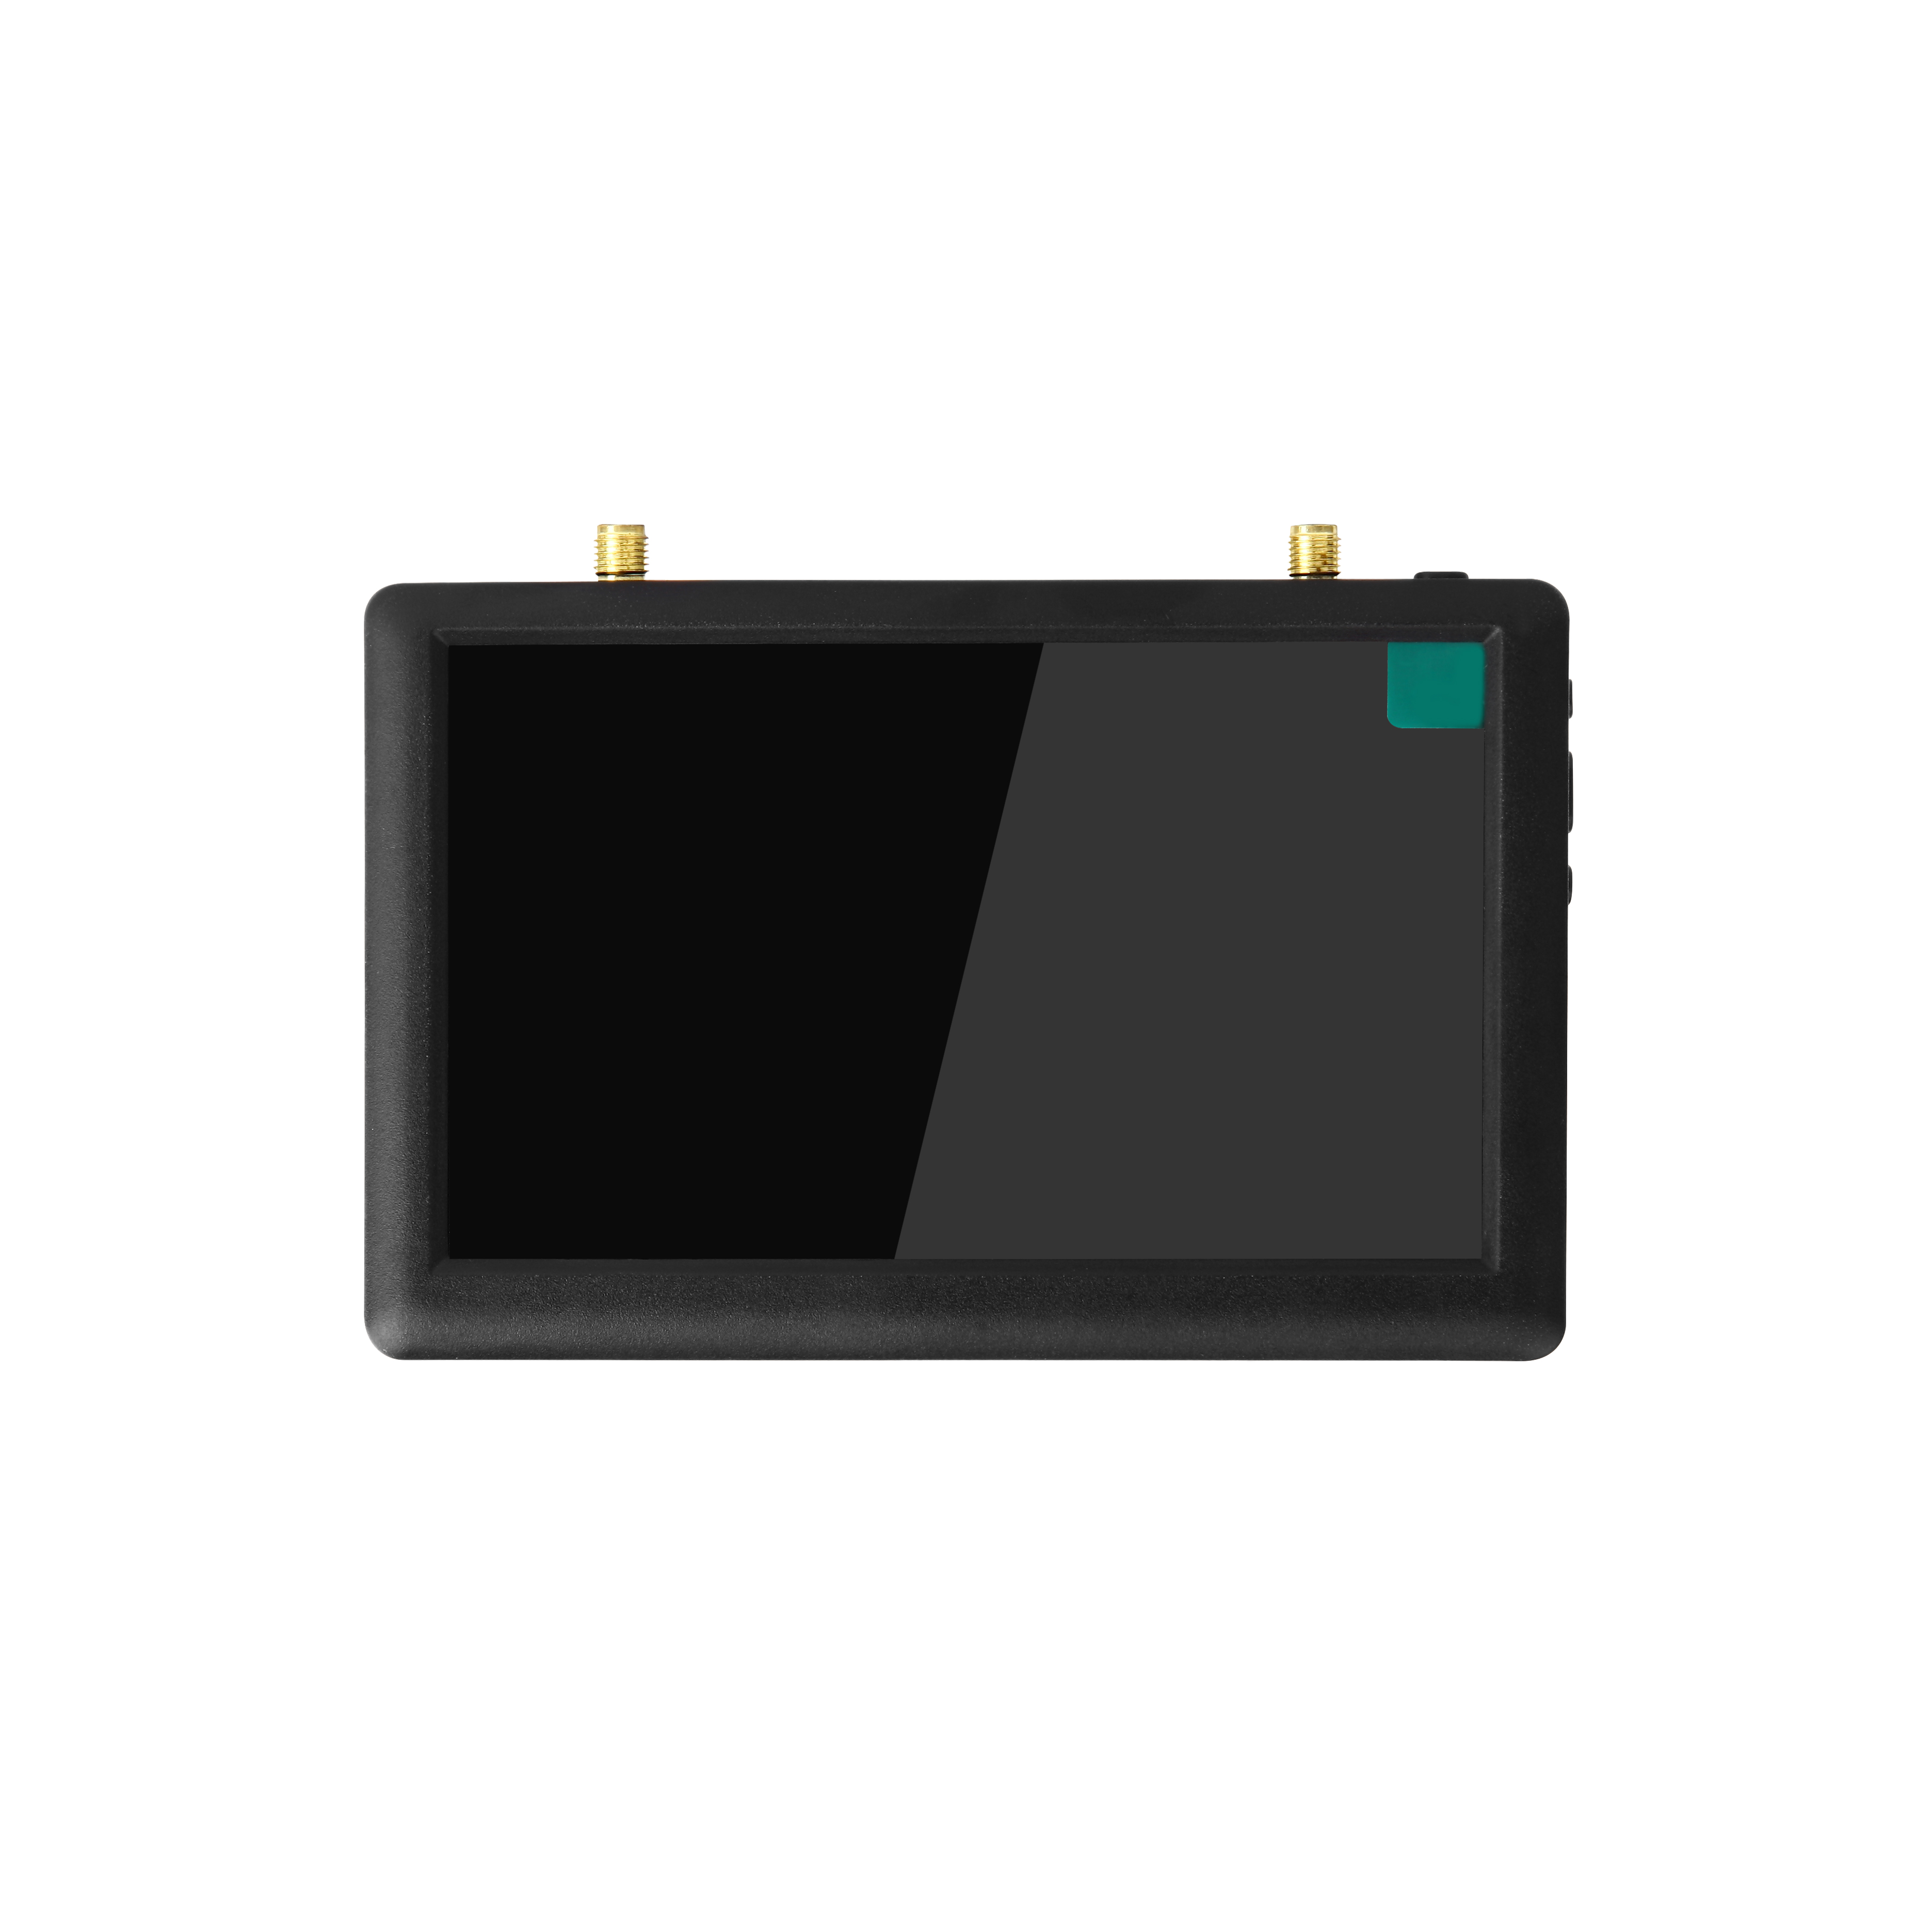 New Arrival Hawkeye Little Pilot 3.5 Inch High Brightness Dual Receivers FPV Monitor Built-In BatteryNew Arrival Hawkeye Little Pilot 3.5 Inch High Brightness Dual Receivers FPV Monitor Built-In Battery